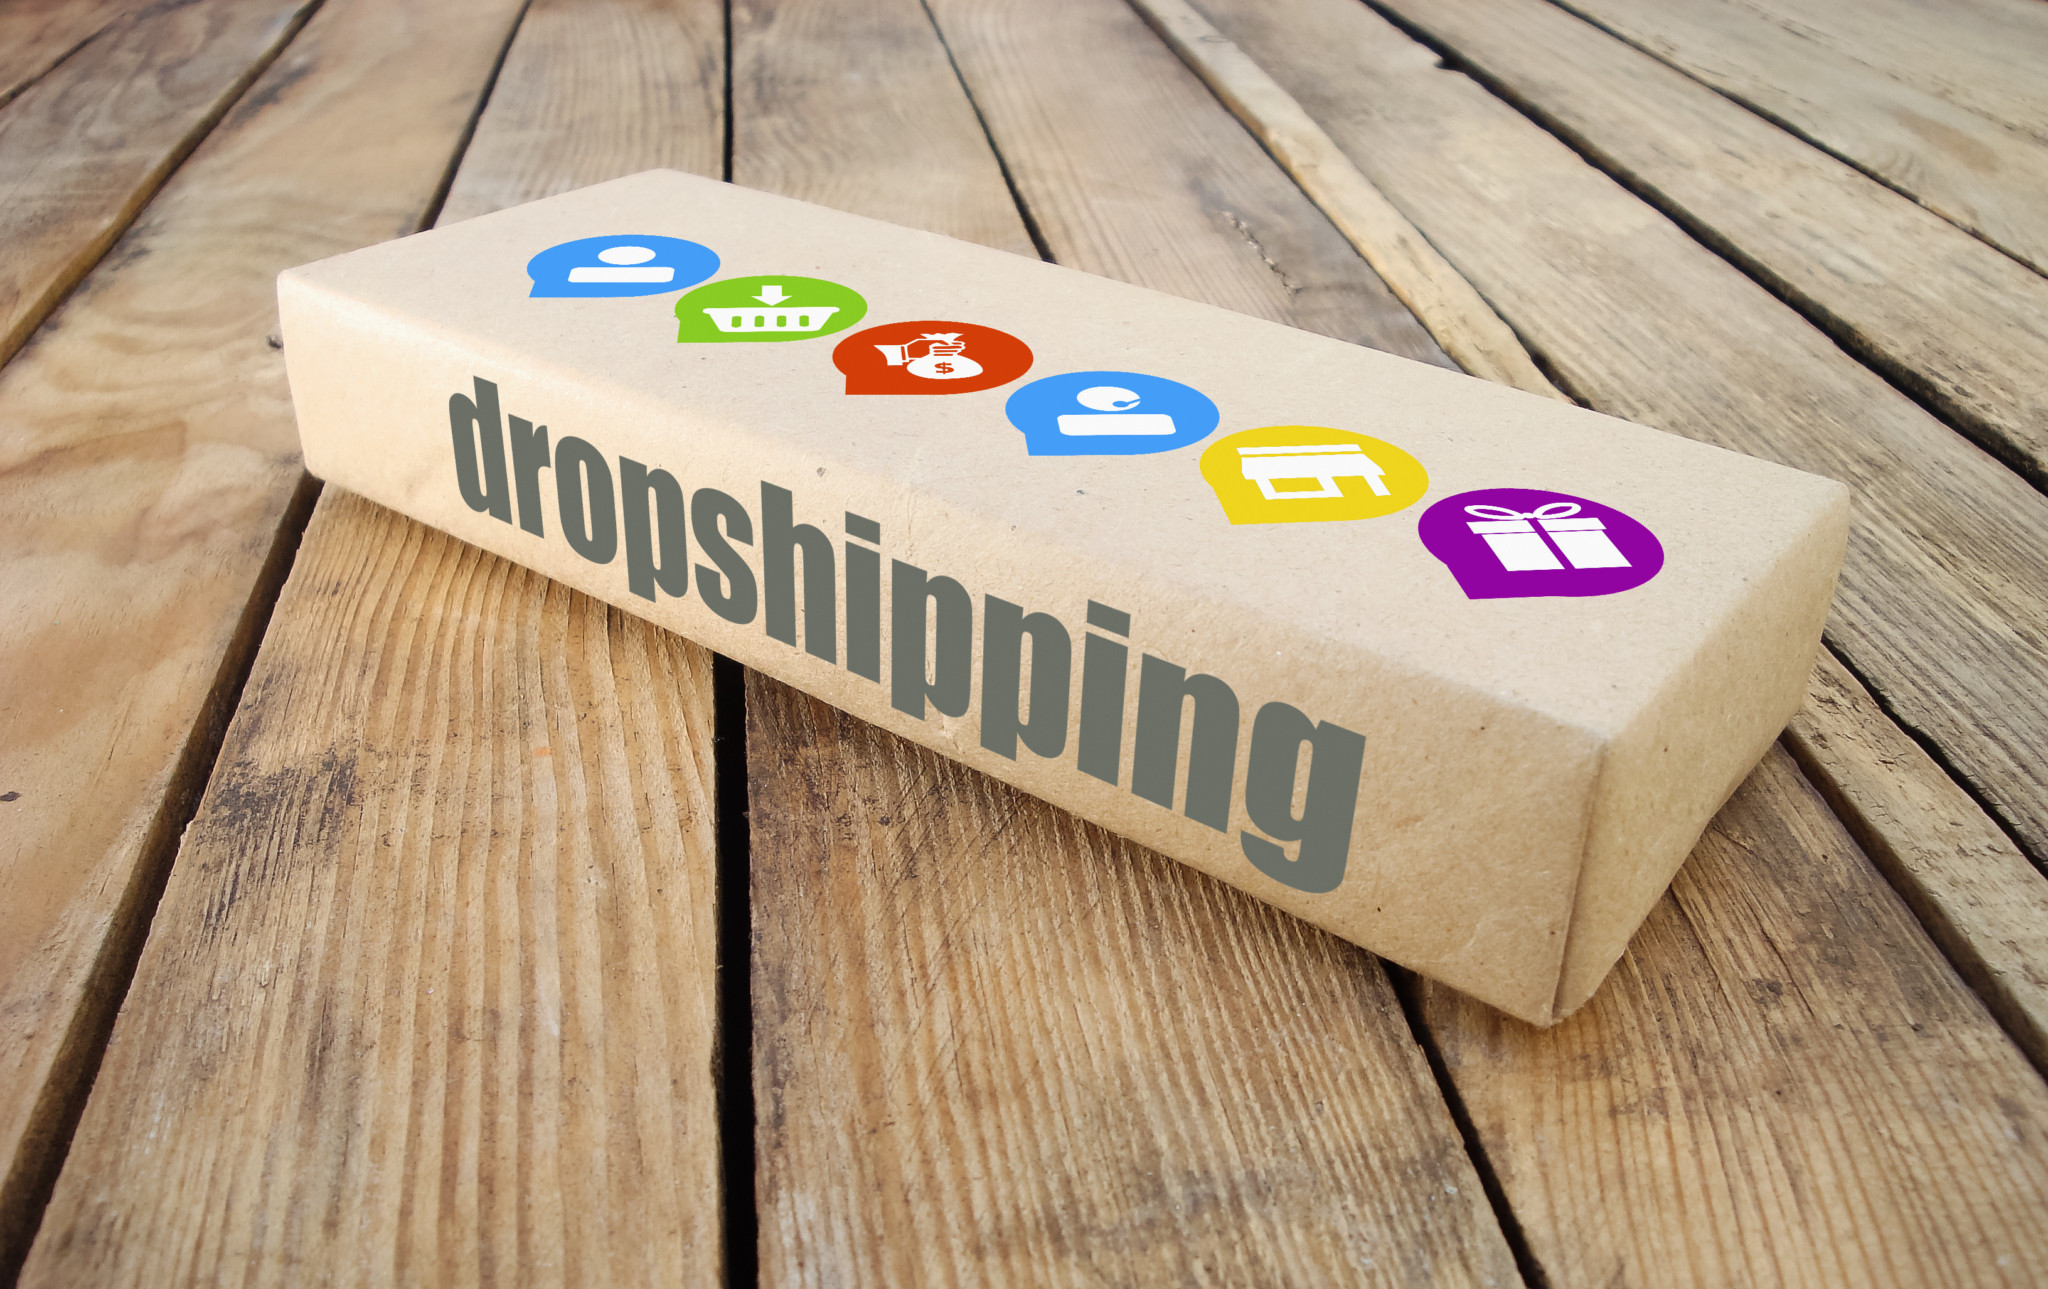 vender dropshipping o productos propios